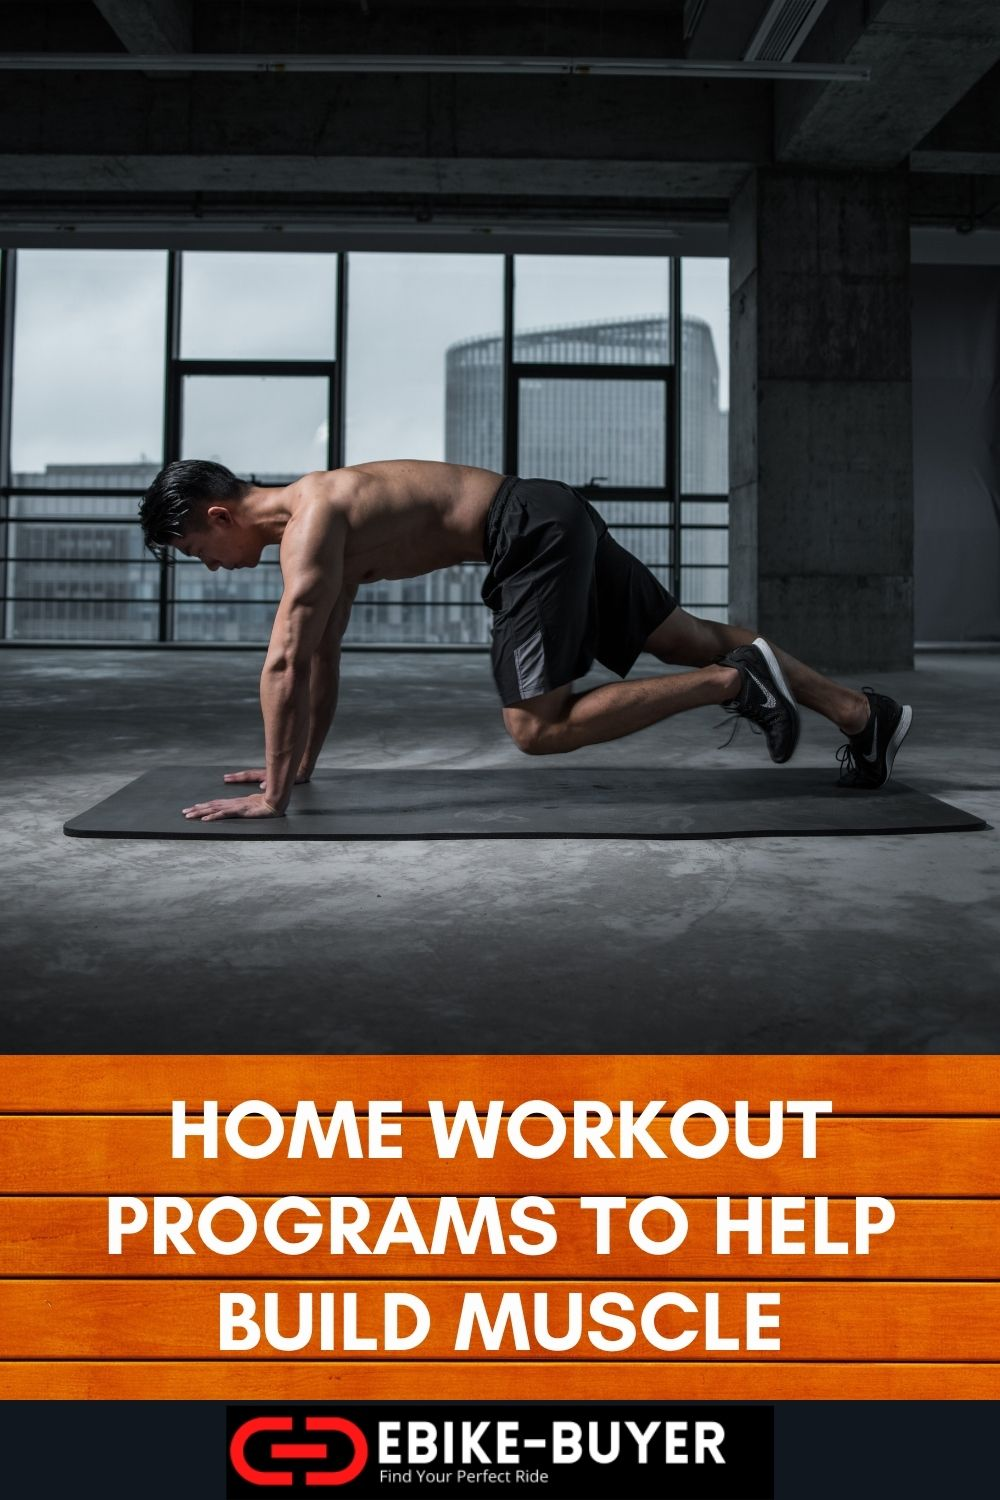 home workout programs to help build muscle